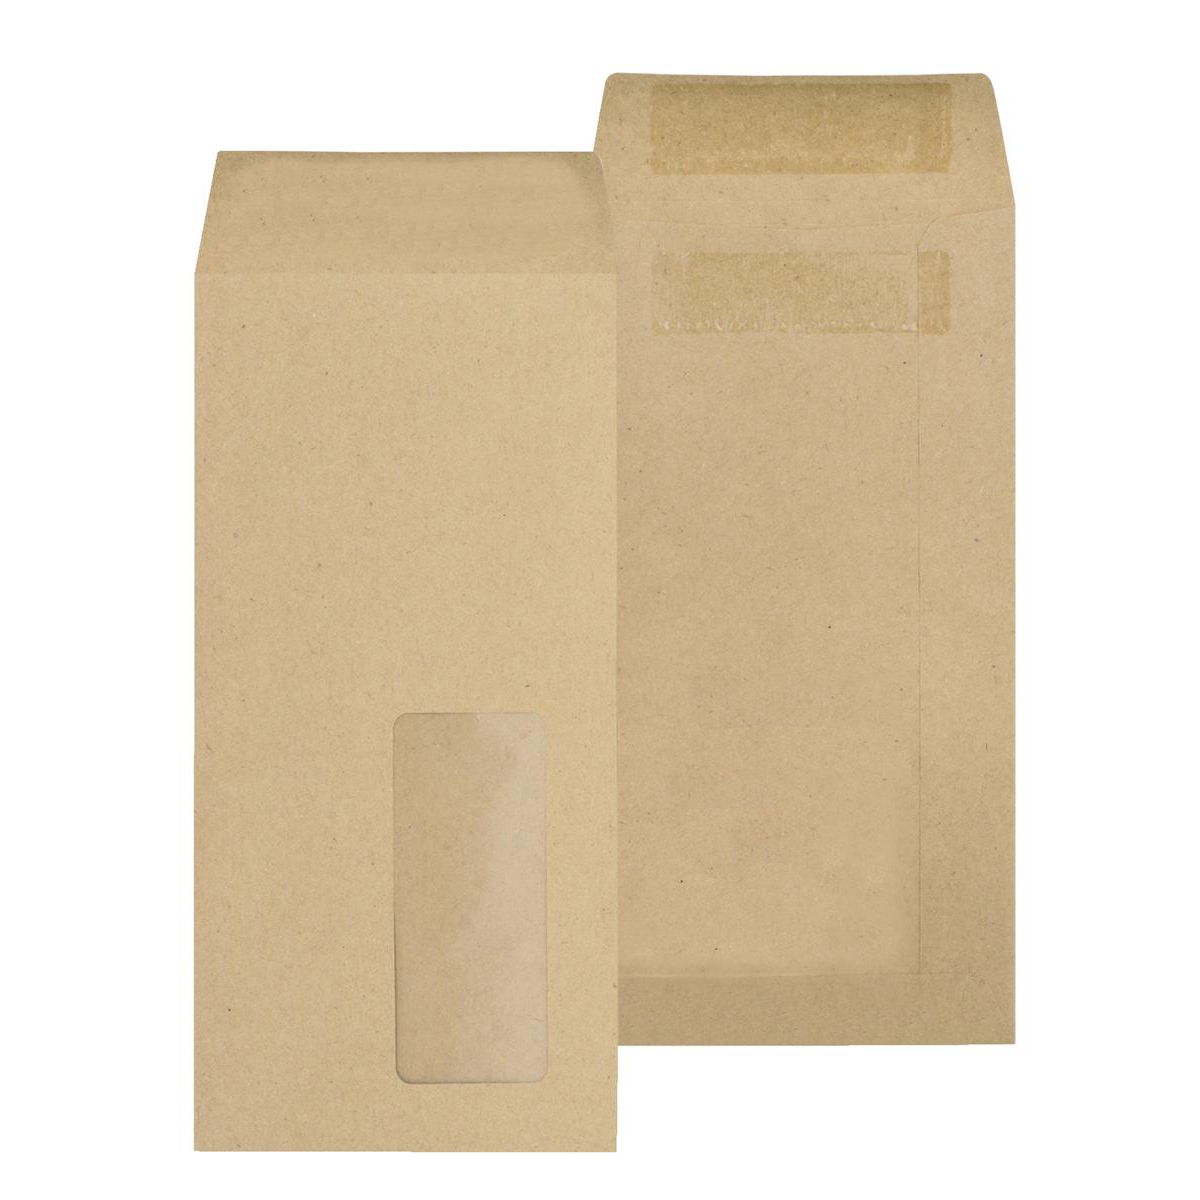 DL New Guardian Envelopes Pocket Self Seal Window 80gsm DL 220x110mm Manilla Ref D25311 Pack 1000